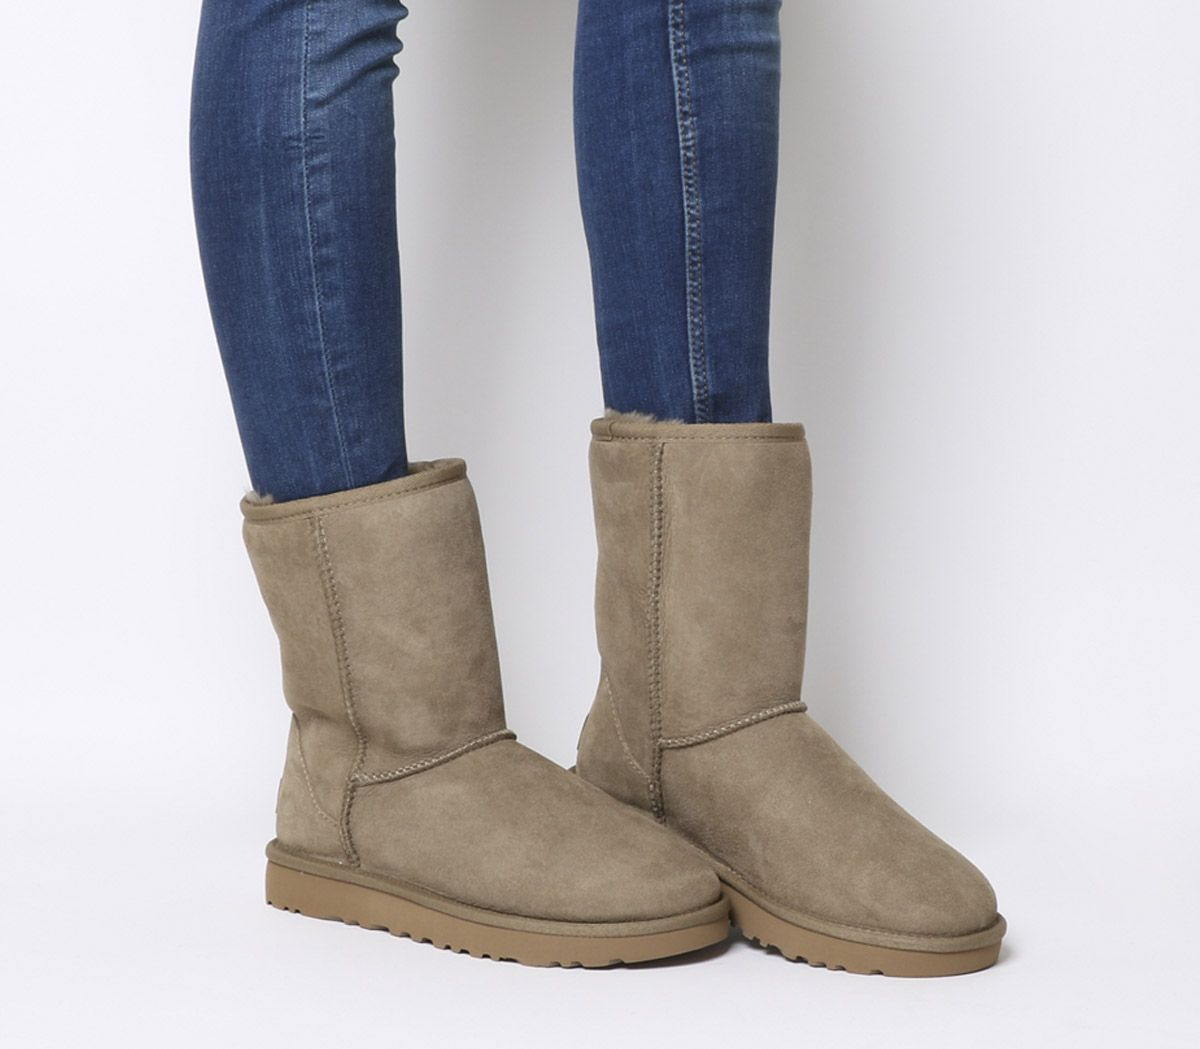 d4eac69ba507 UGG Classic Short II Boots Antilope - Ankle Boots